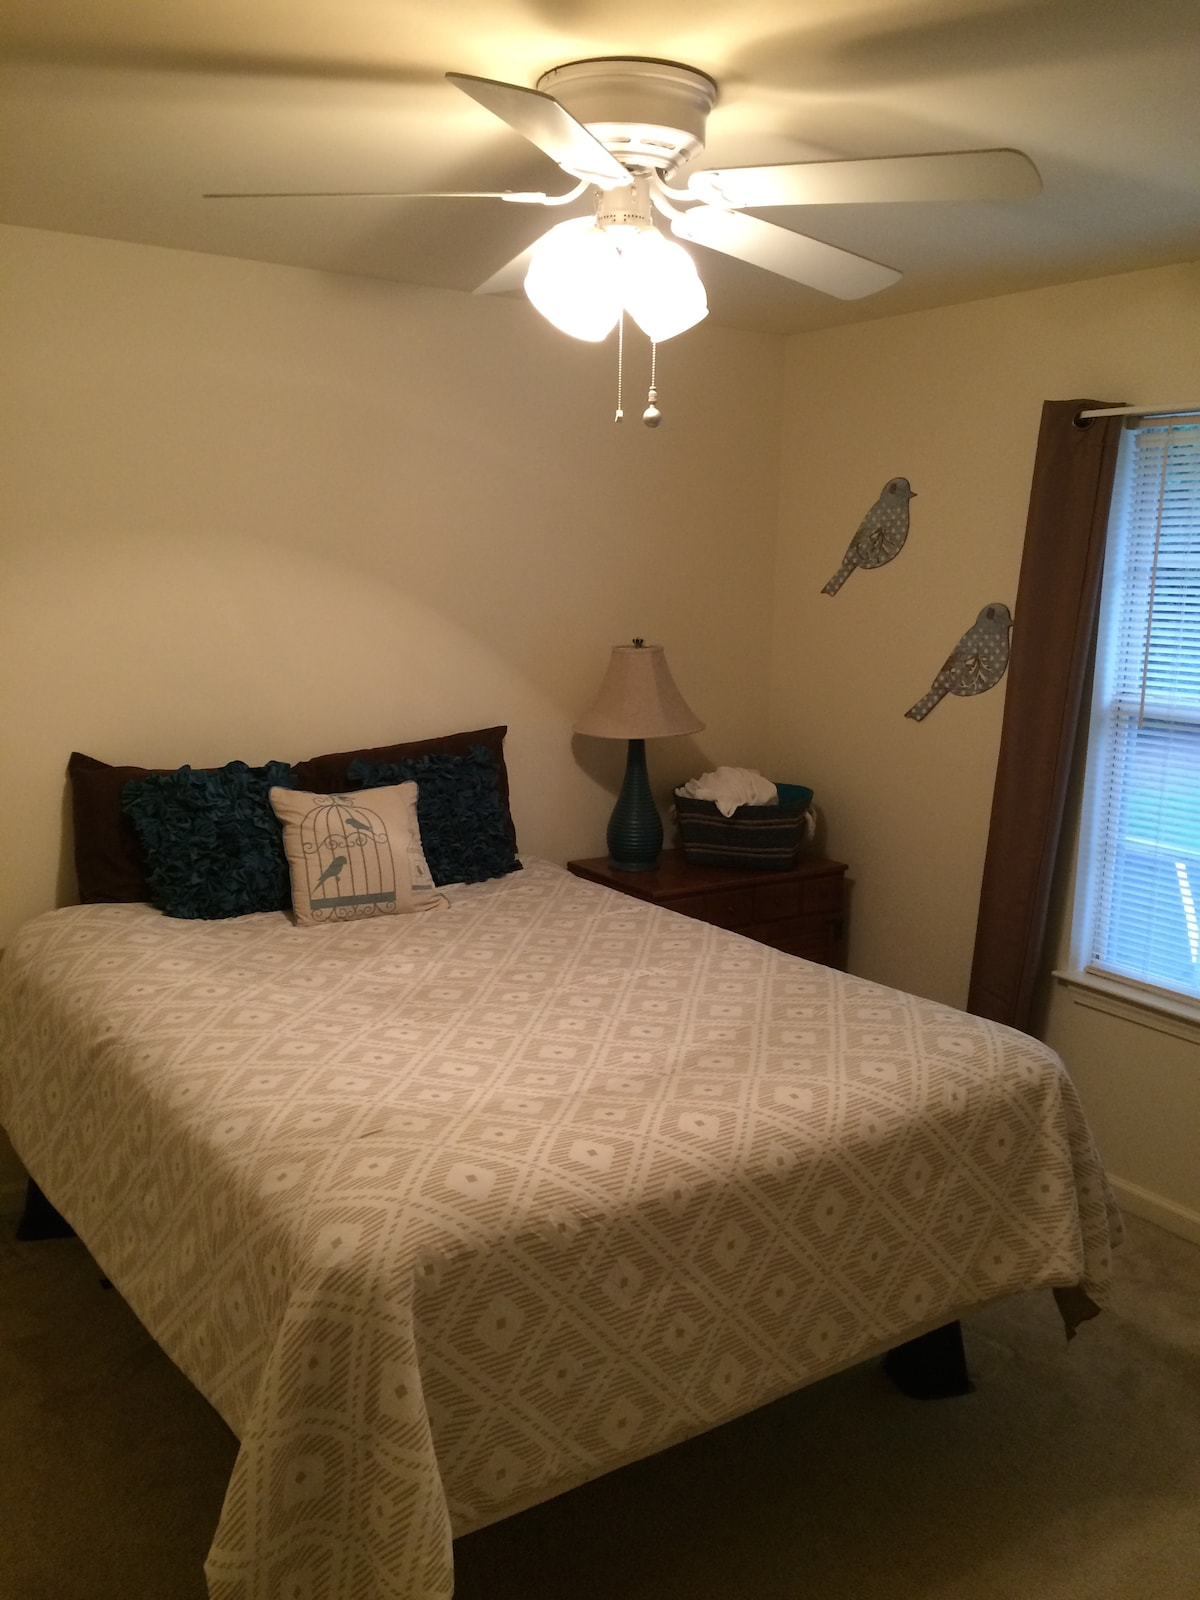 Private bed and bathroom in clemson